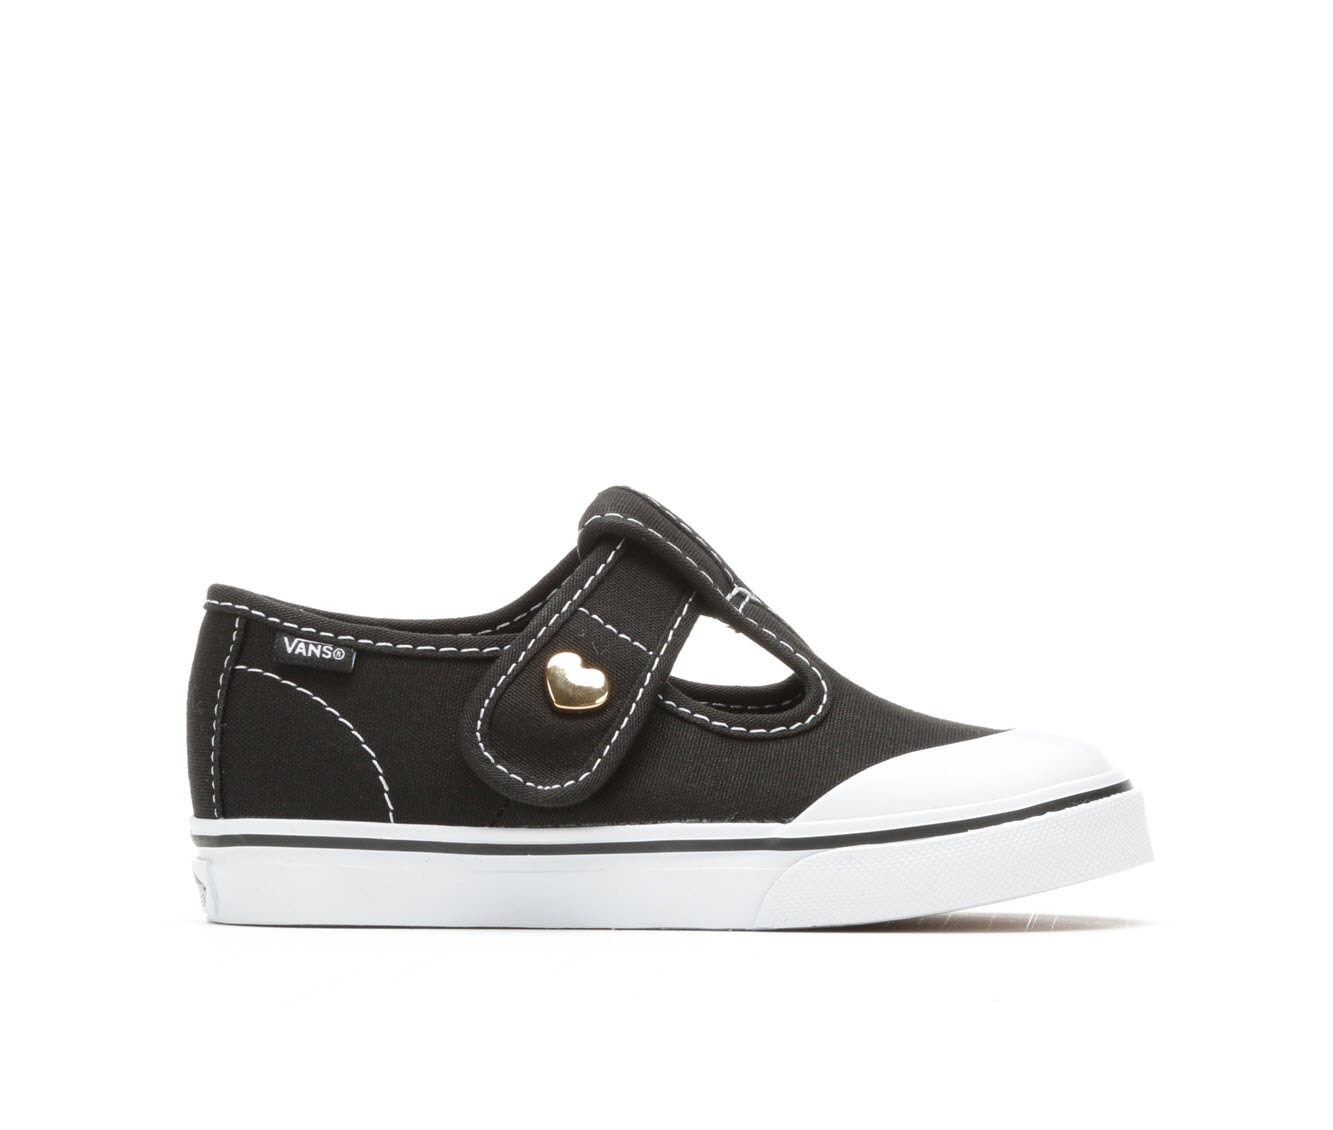 Girls' Vans Infant Leena Velcro Sneakers (Black)